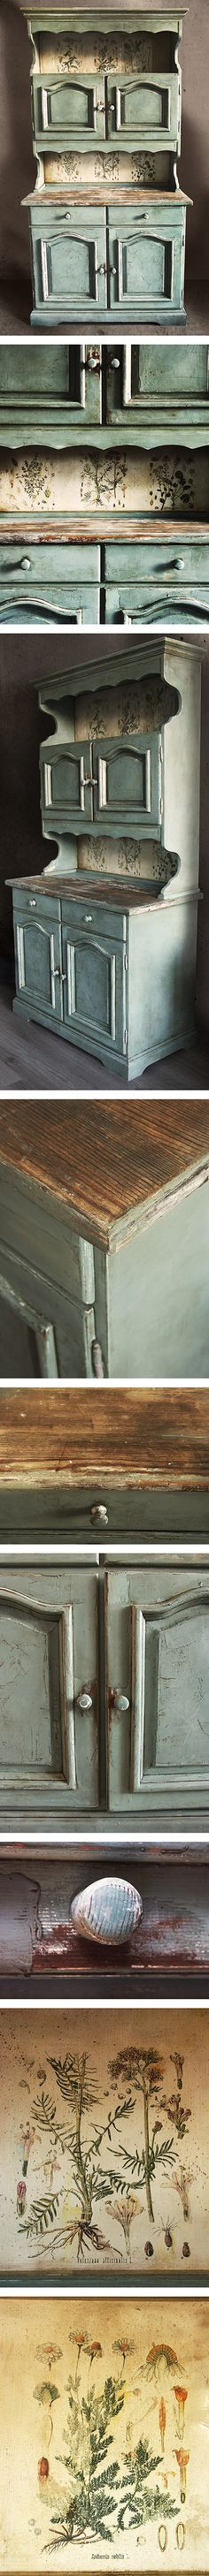 Unique, hand decorated, beautiful details. Vintage cupboard, refreshed, restyled, distressed and stained to get the chippy look. Hand painted with annie sloan chalk paint in duck egg blue, beautiful blue with gray hue. Sealed with linseed oil and wax. Botanical illustrations come from 19th century herbarium book. Stabile and sturdy furniture. Wonderful item for farmhouse, vintage, brocante and industrial interiors. By eacolours. https://www.etsy.com/shop/eacolours